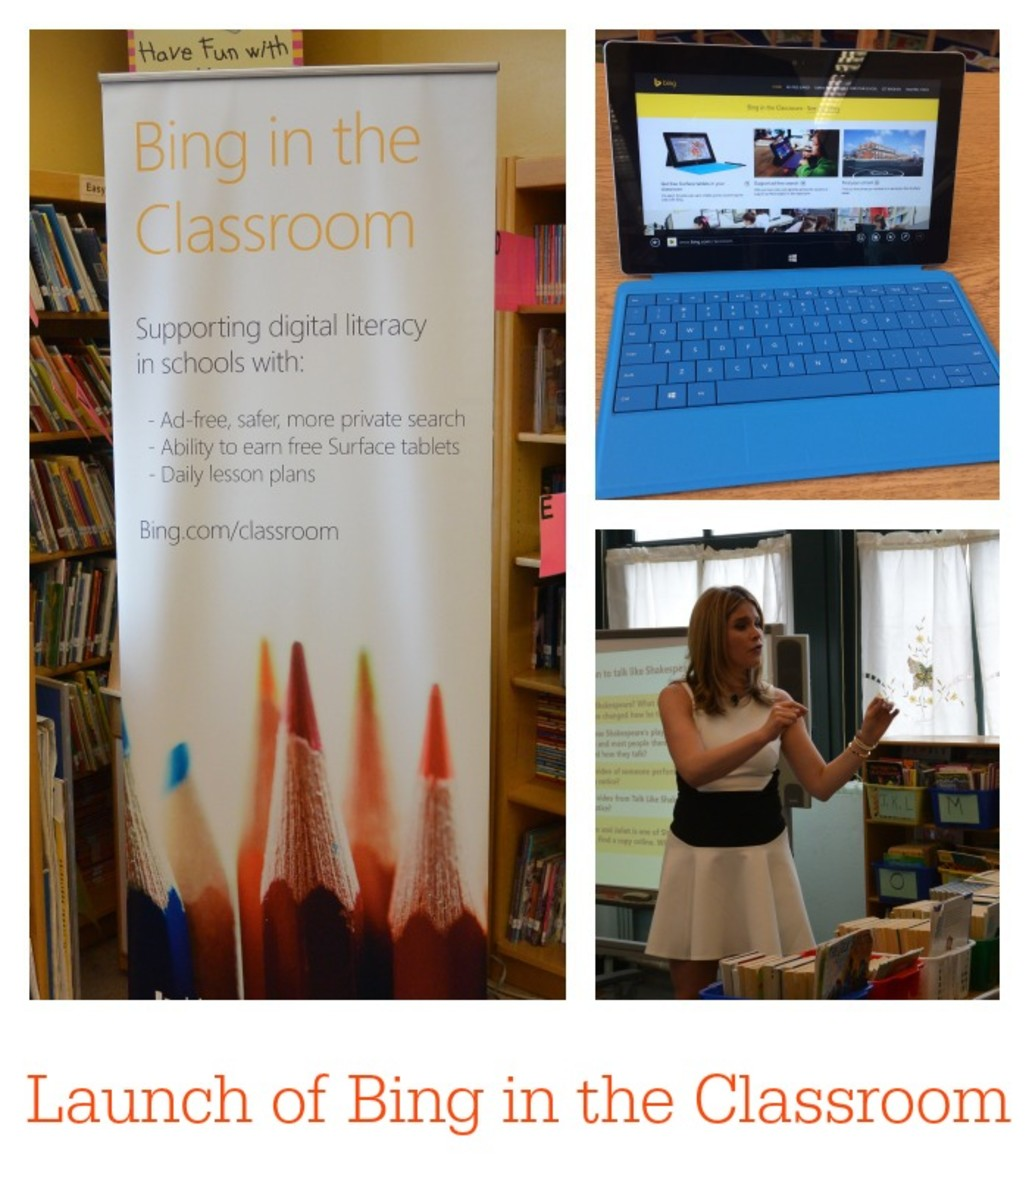 Launch of Bing in the Classroom